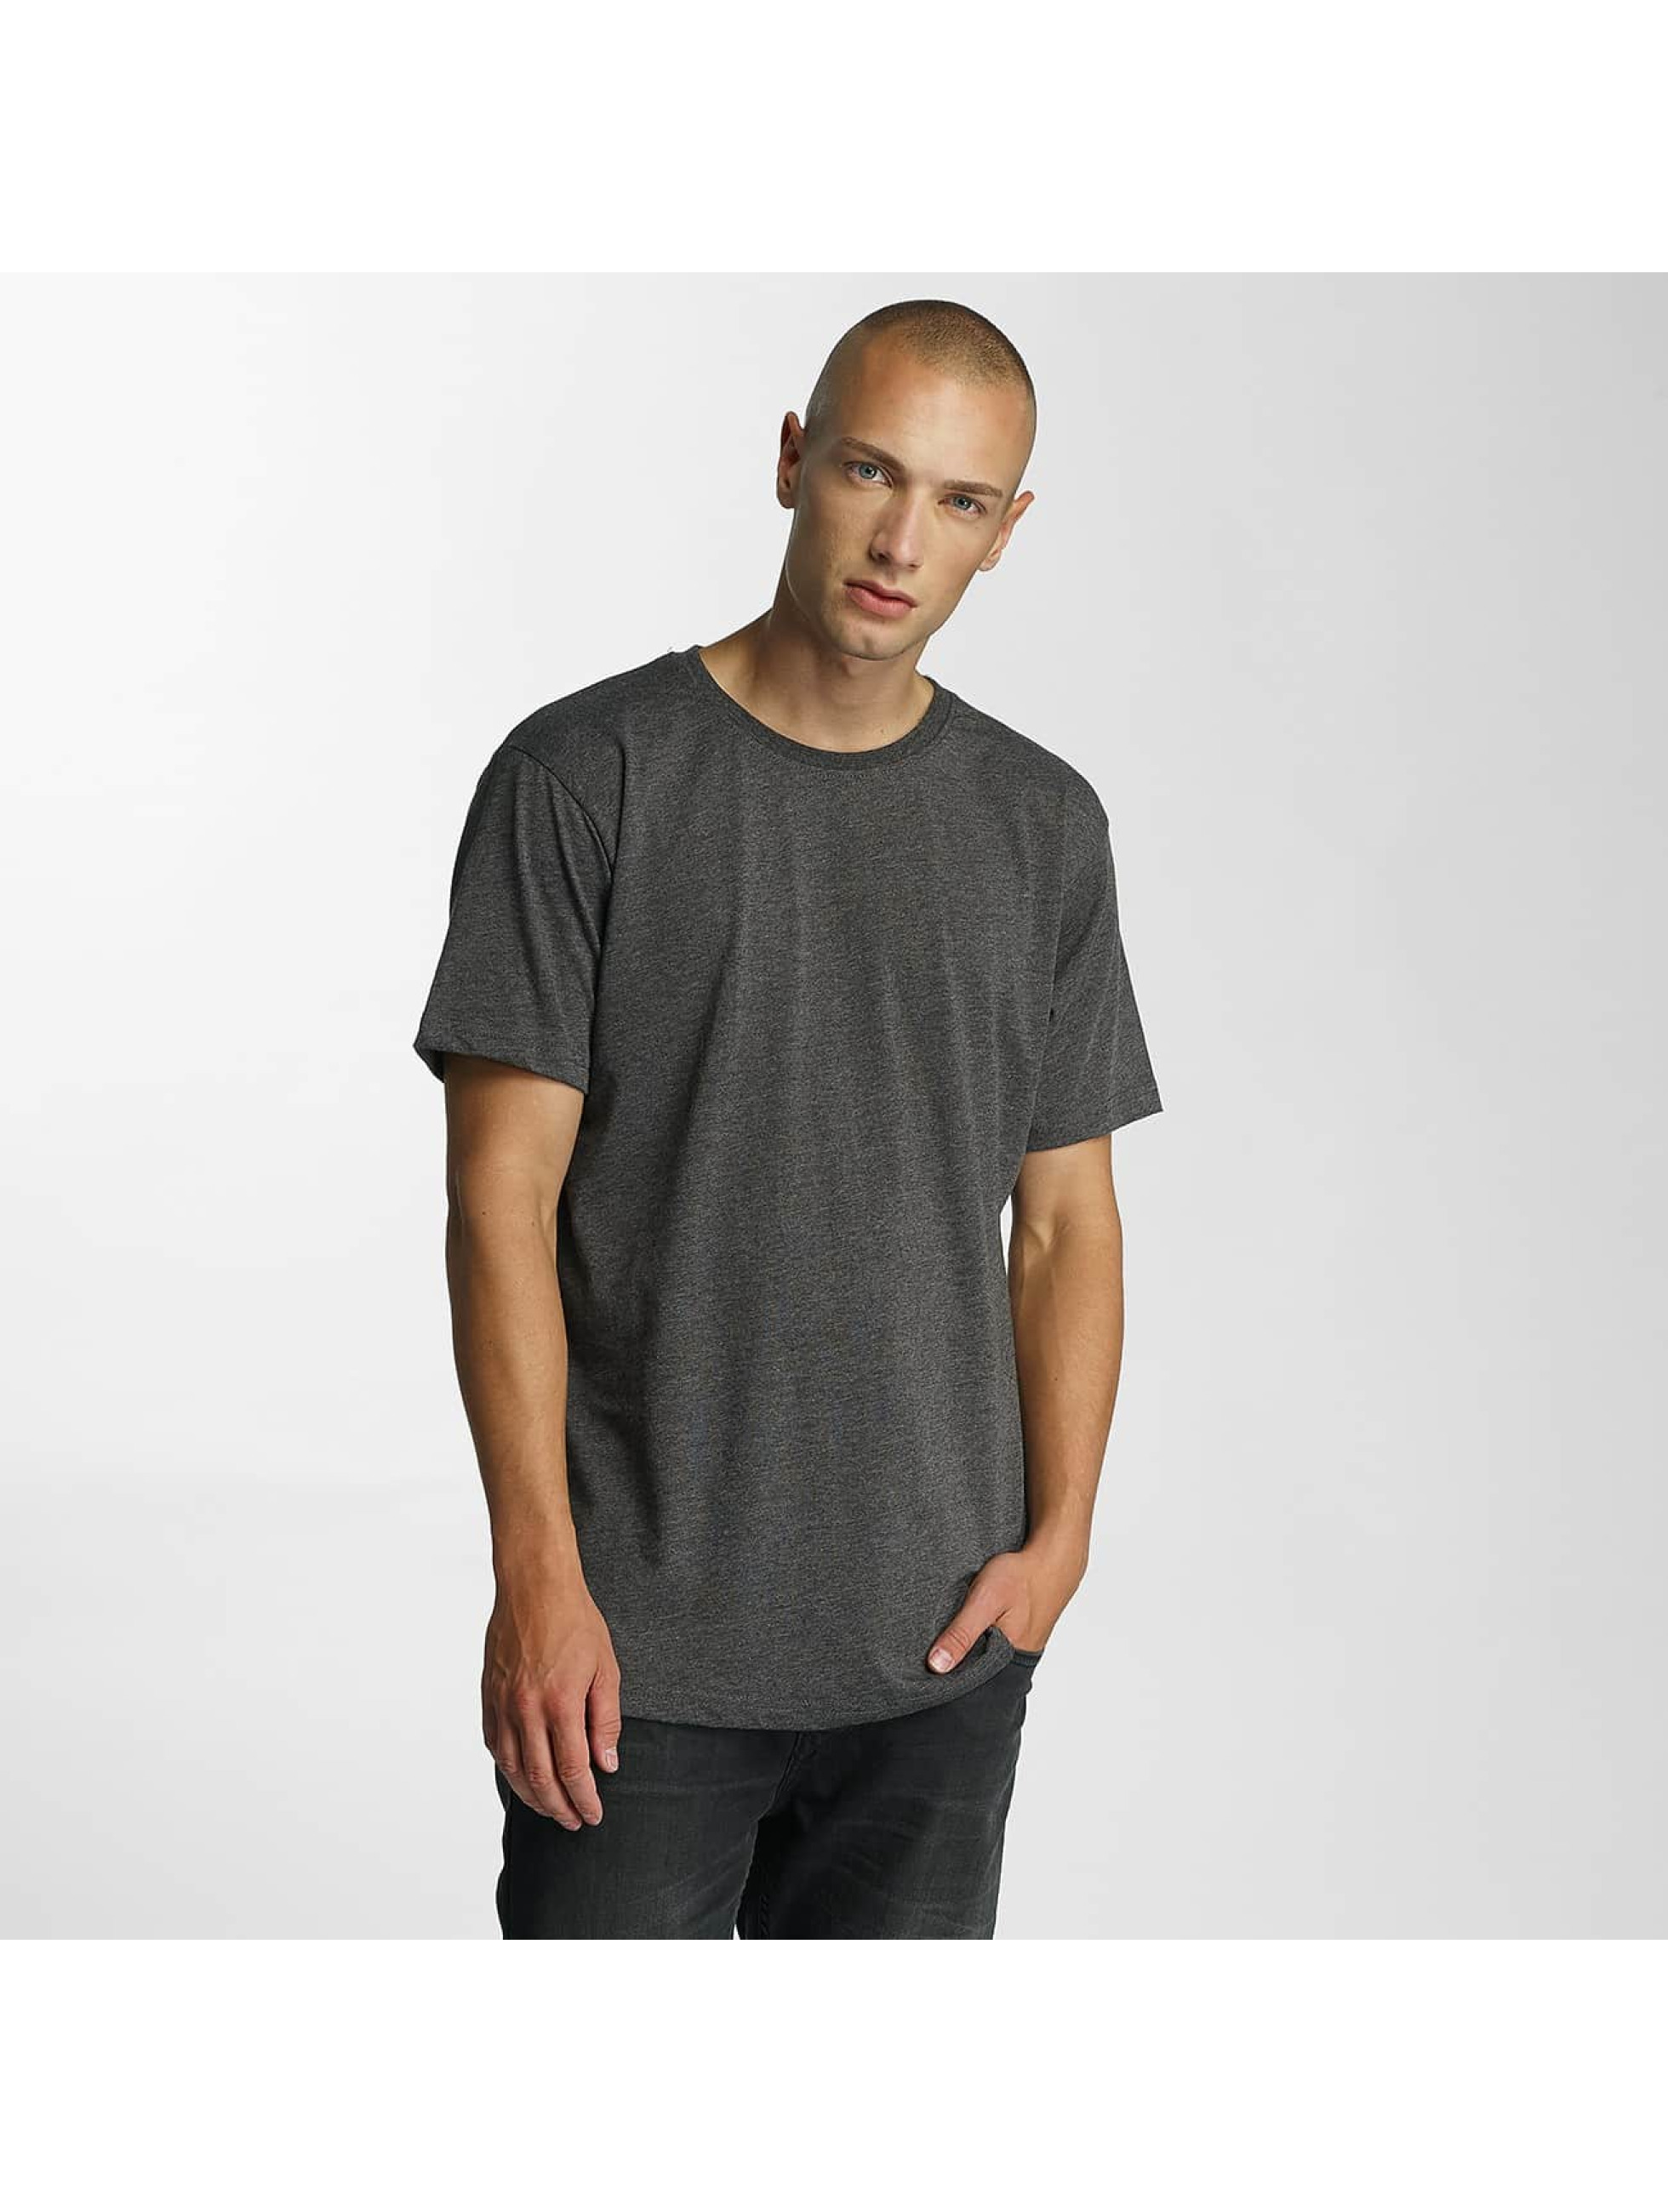 Cyprime / T-Shirt Basic Organic Cotton in grey XL